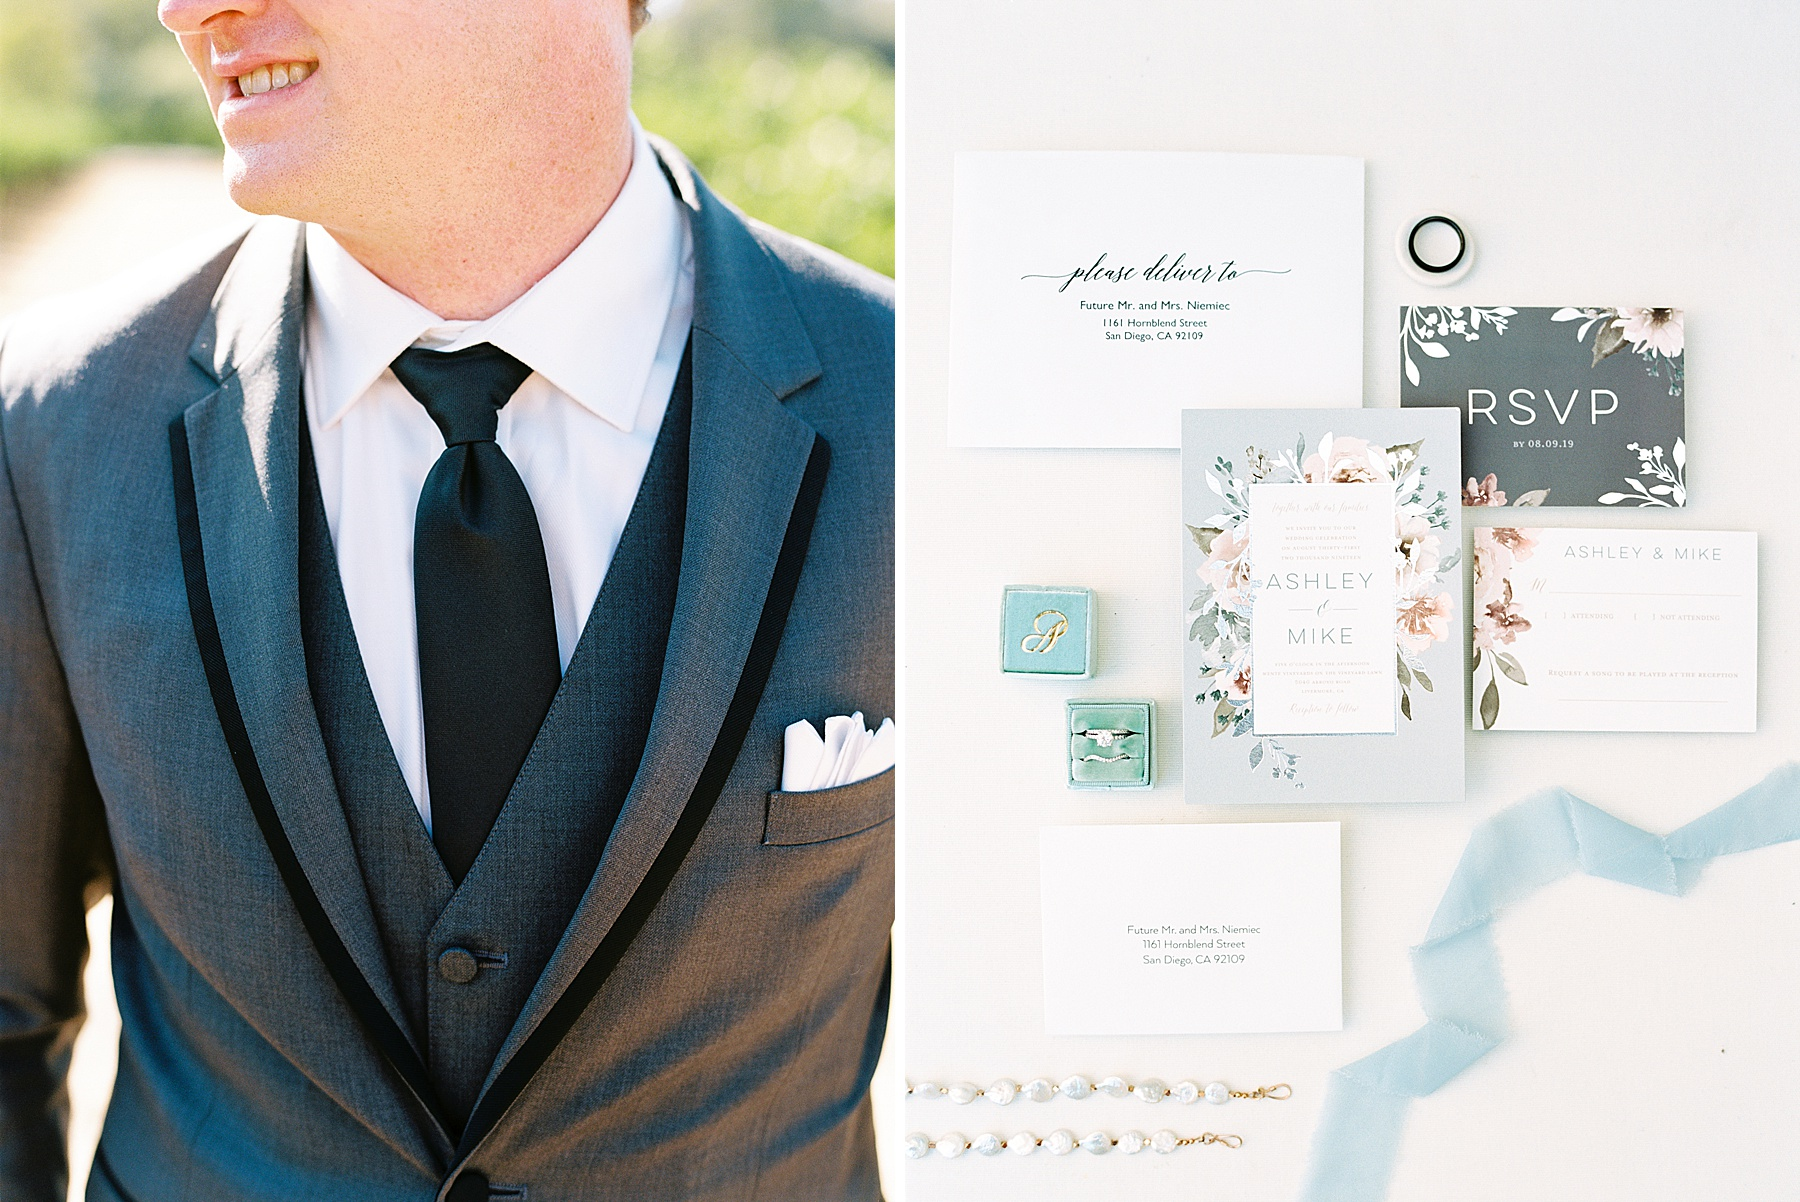 Wente Wedding with A Tropical Color Palette - Ashley & Mike - Featured on Inspired by This - Ashley Baumgartner_0007.jpg